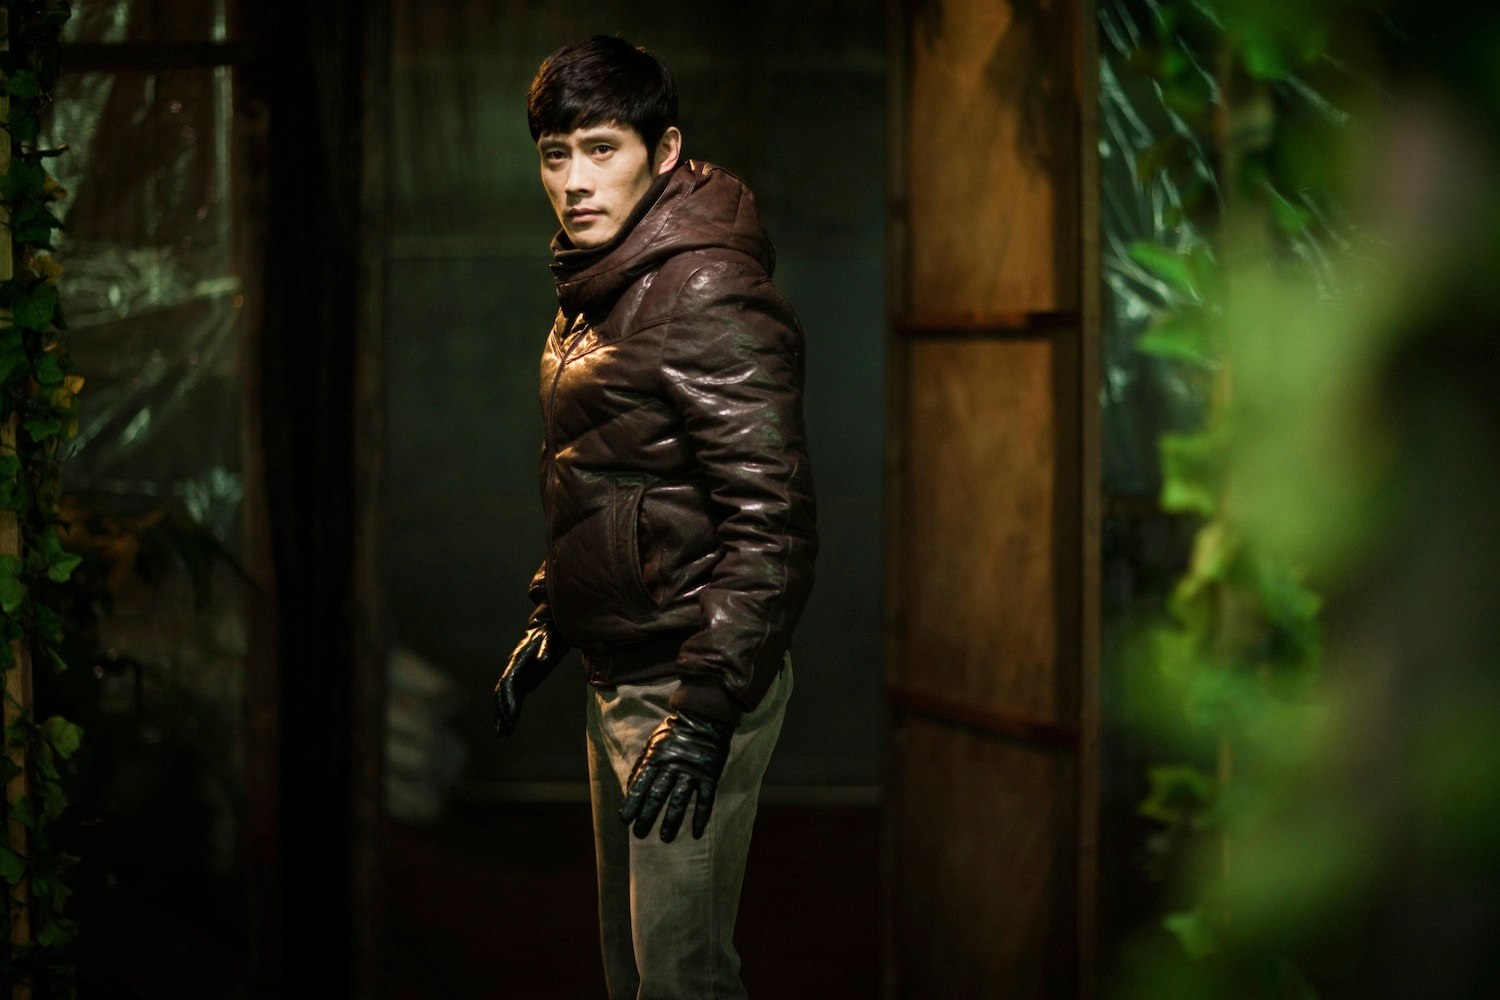 The obsessively pursuing nemesis detective Byung-hun Lee in I Saw the Devil (2010)